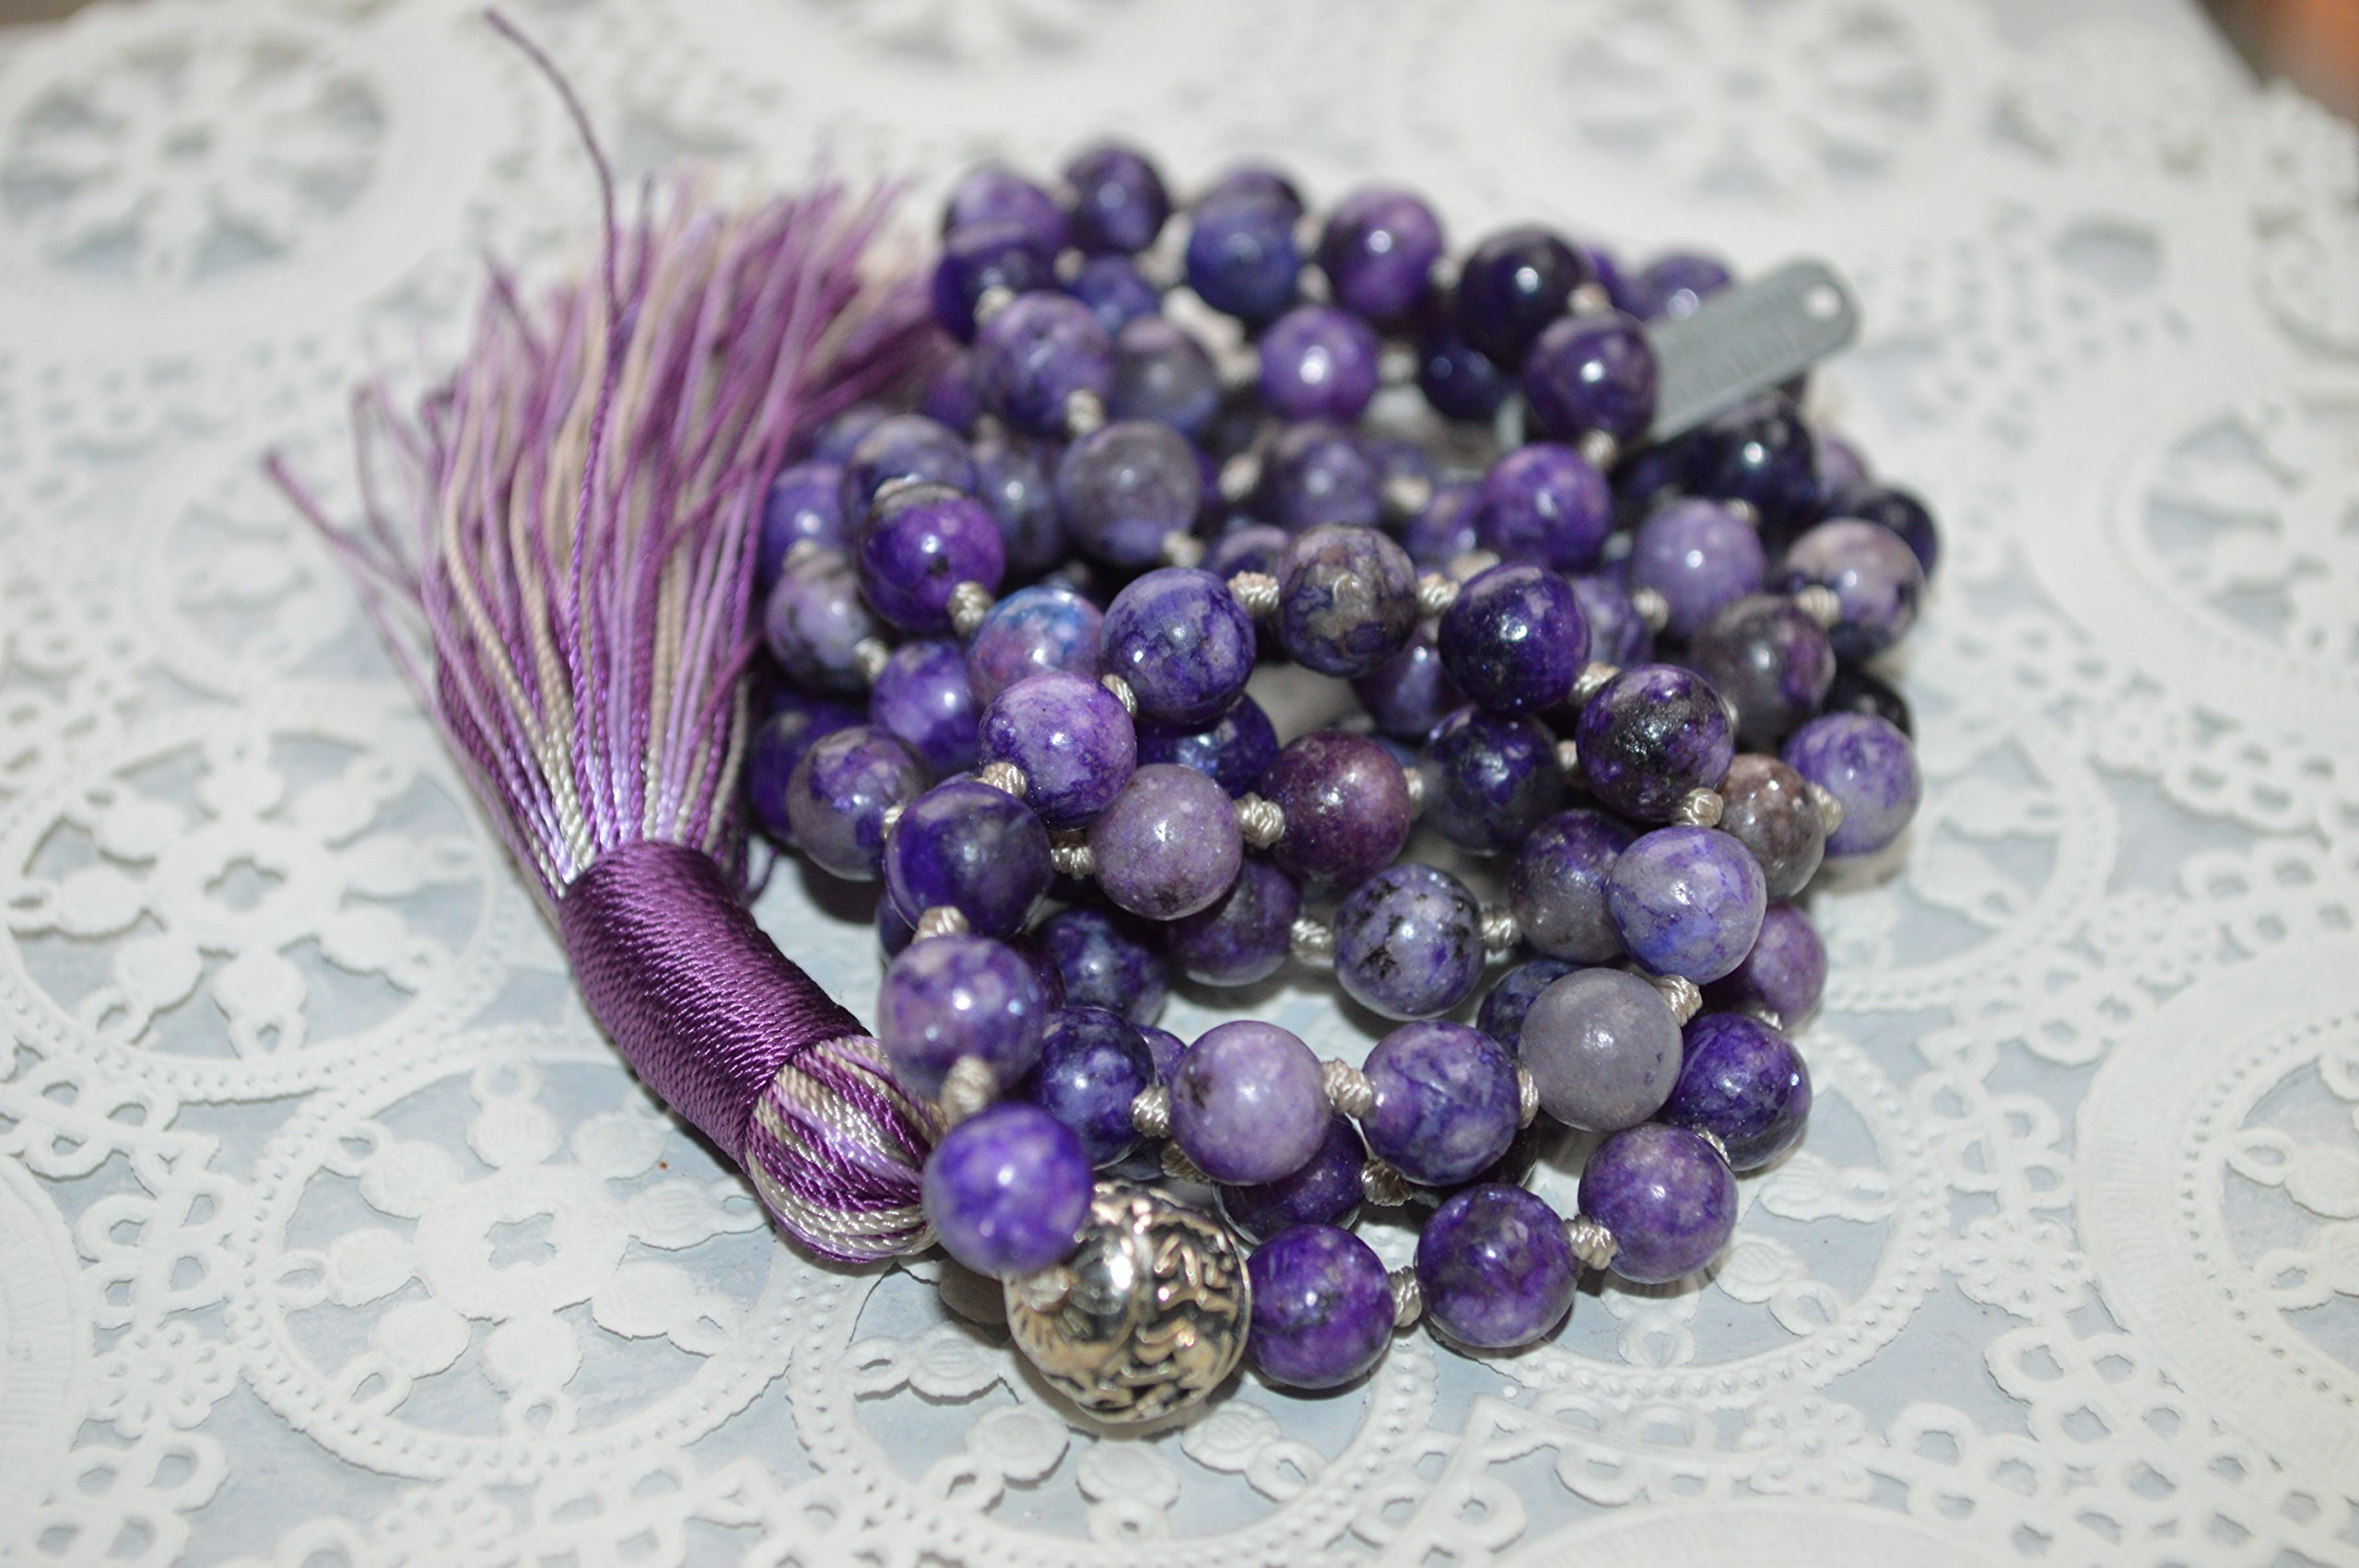 108 Genuine Knotted Lepidolite Mala Beads Necklace, Energized Lepidolite Mala, 8 mm Lepidolite Necklace, Purple and Green Mala